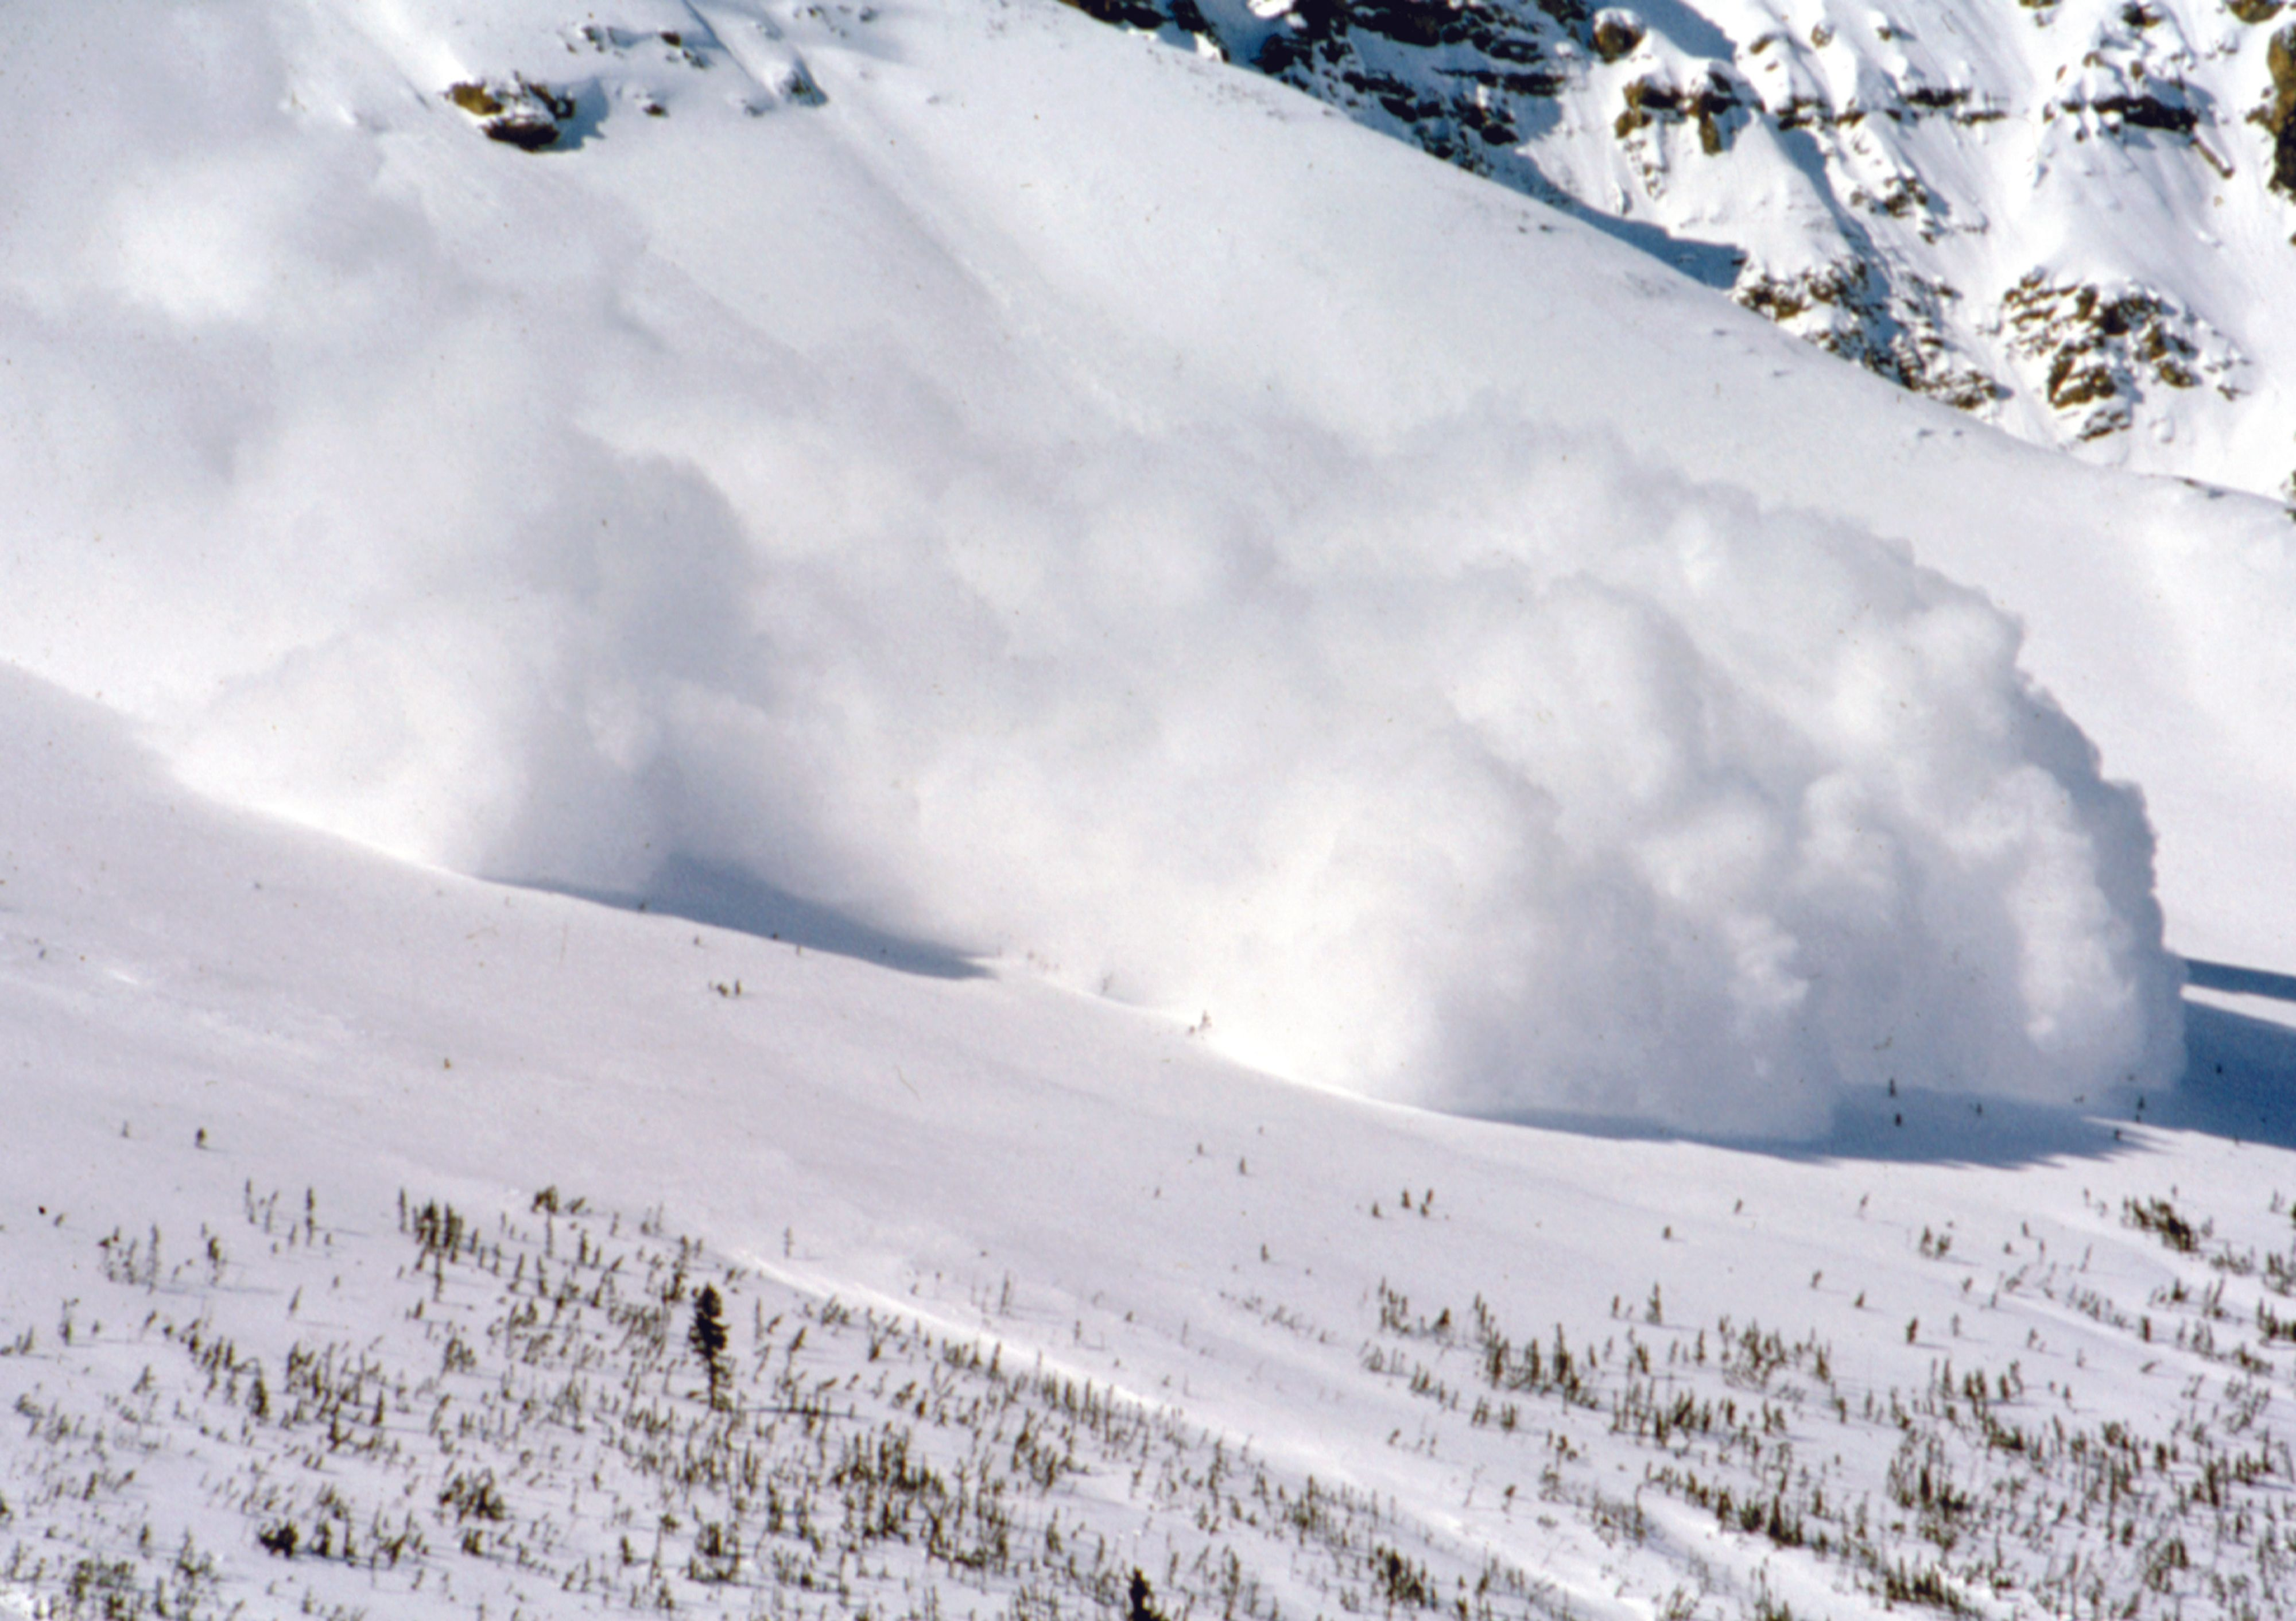 A large avalanche in the Rocky Mountains dwarfs the trees in its path.